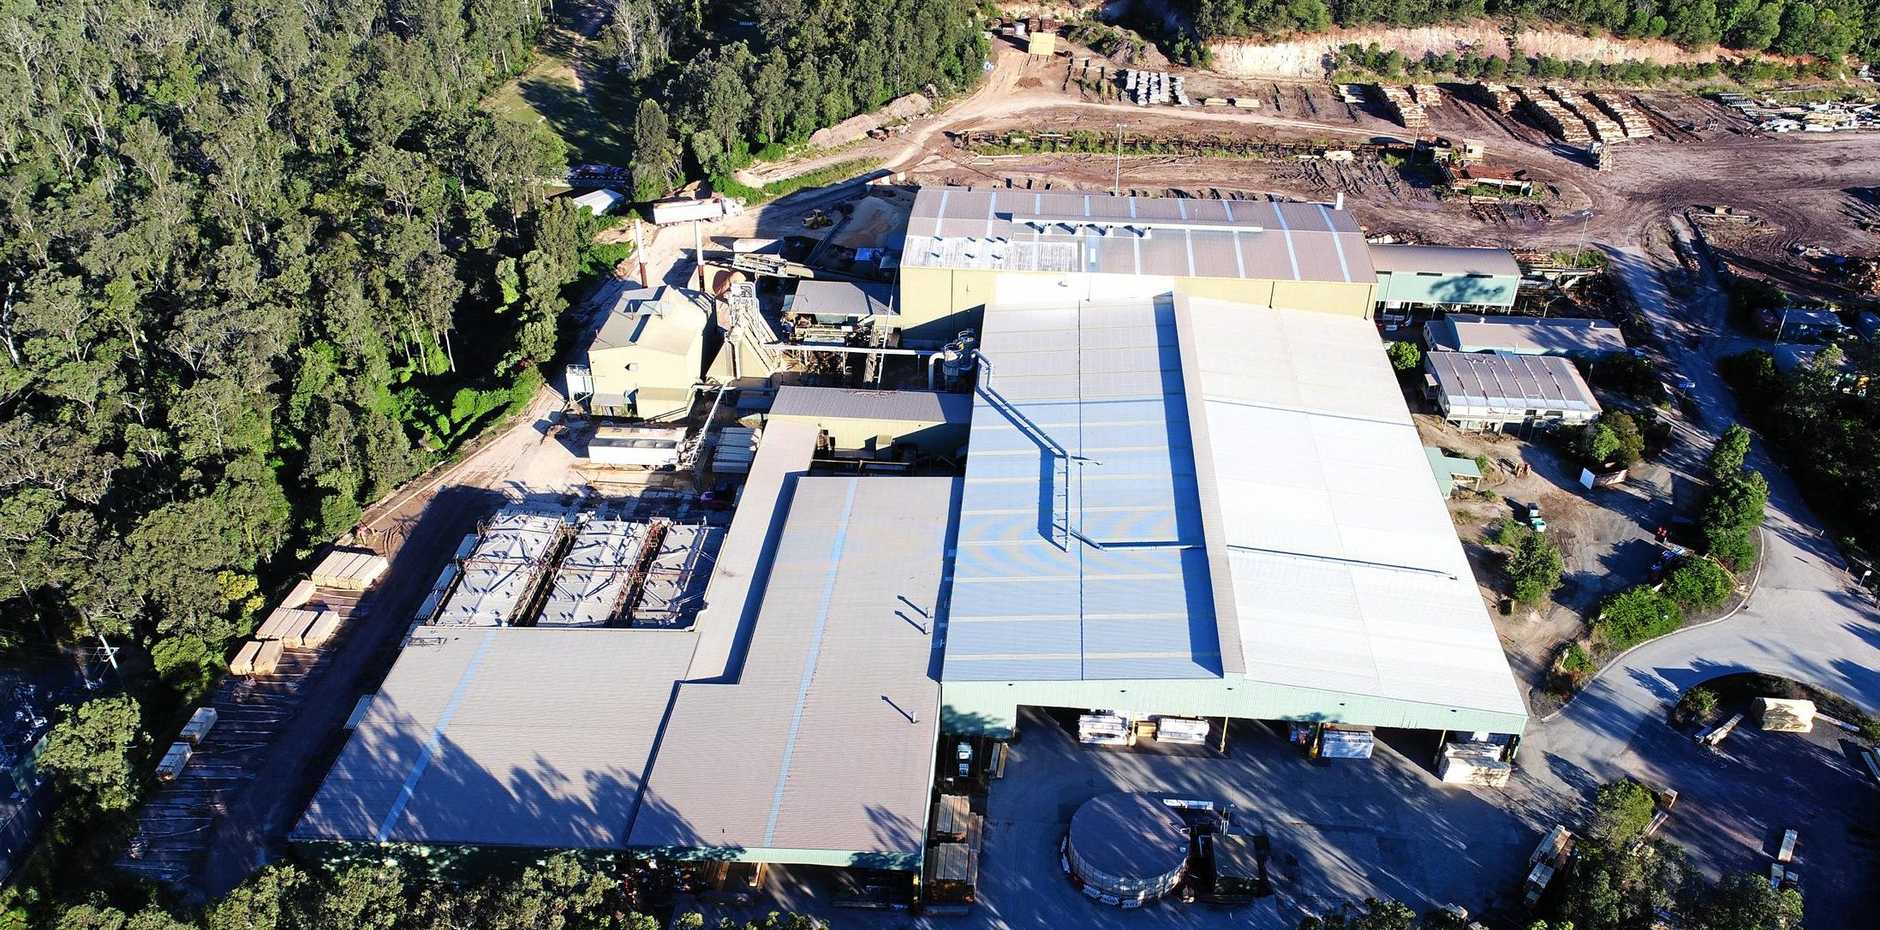 FAIR WORK FIGHT: A man's year-long fight over the ownership of his fingerprints has ended in a wrongful dismissal claim victory against Imbil's Superior Wood Sawmill.